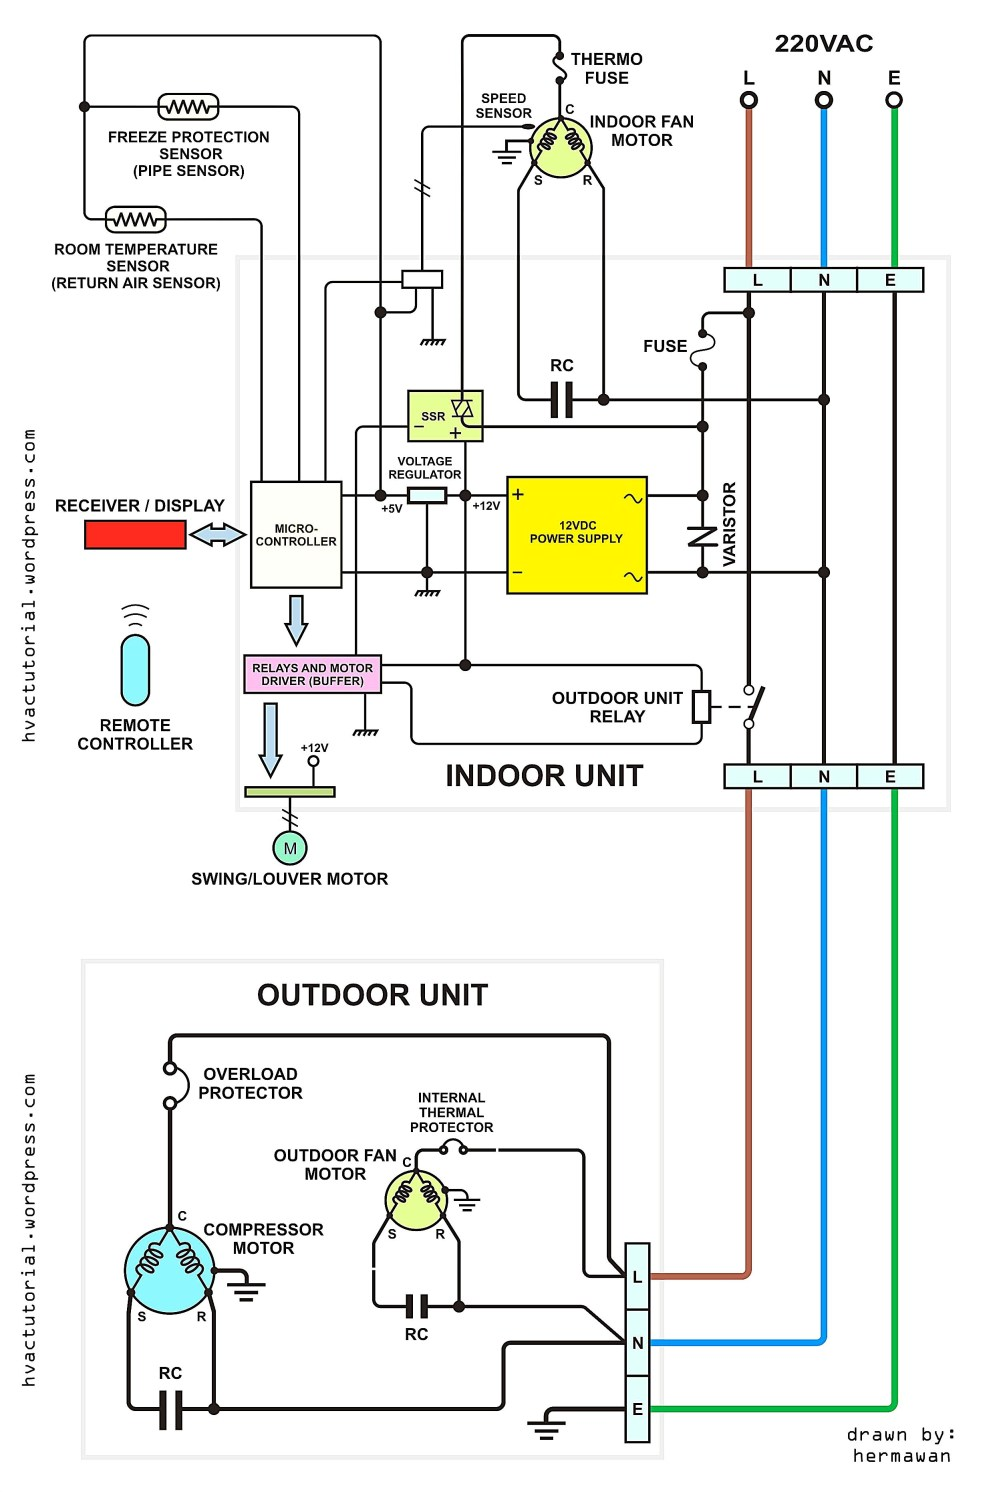 medium resolution of bryant humidifier wiring diagram database of wiring library nest gen 3 wiring to wiring aprilaire conert aprilaire 500m wiring to carrier